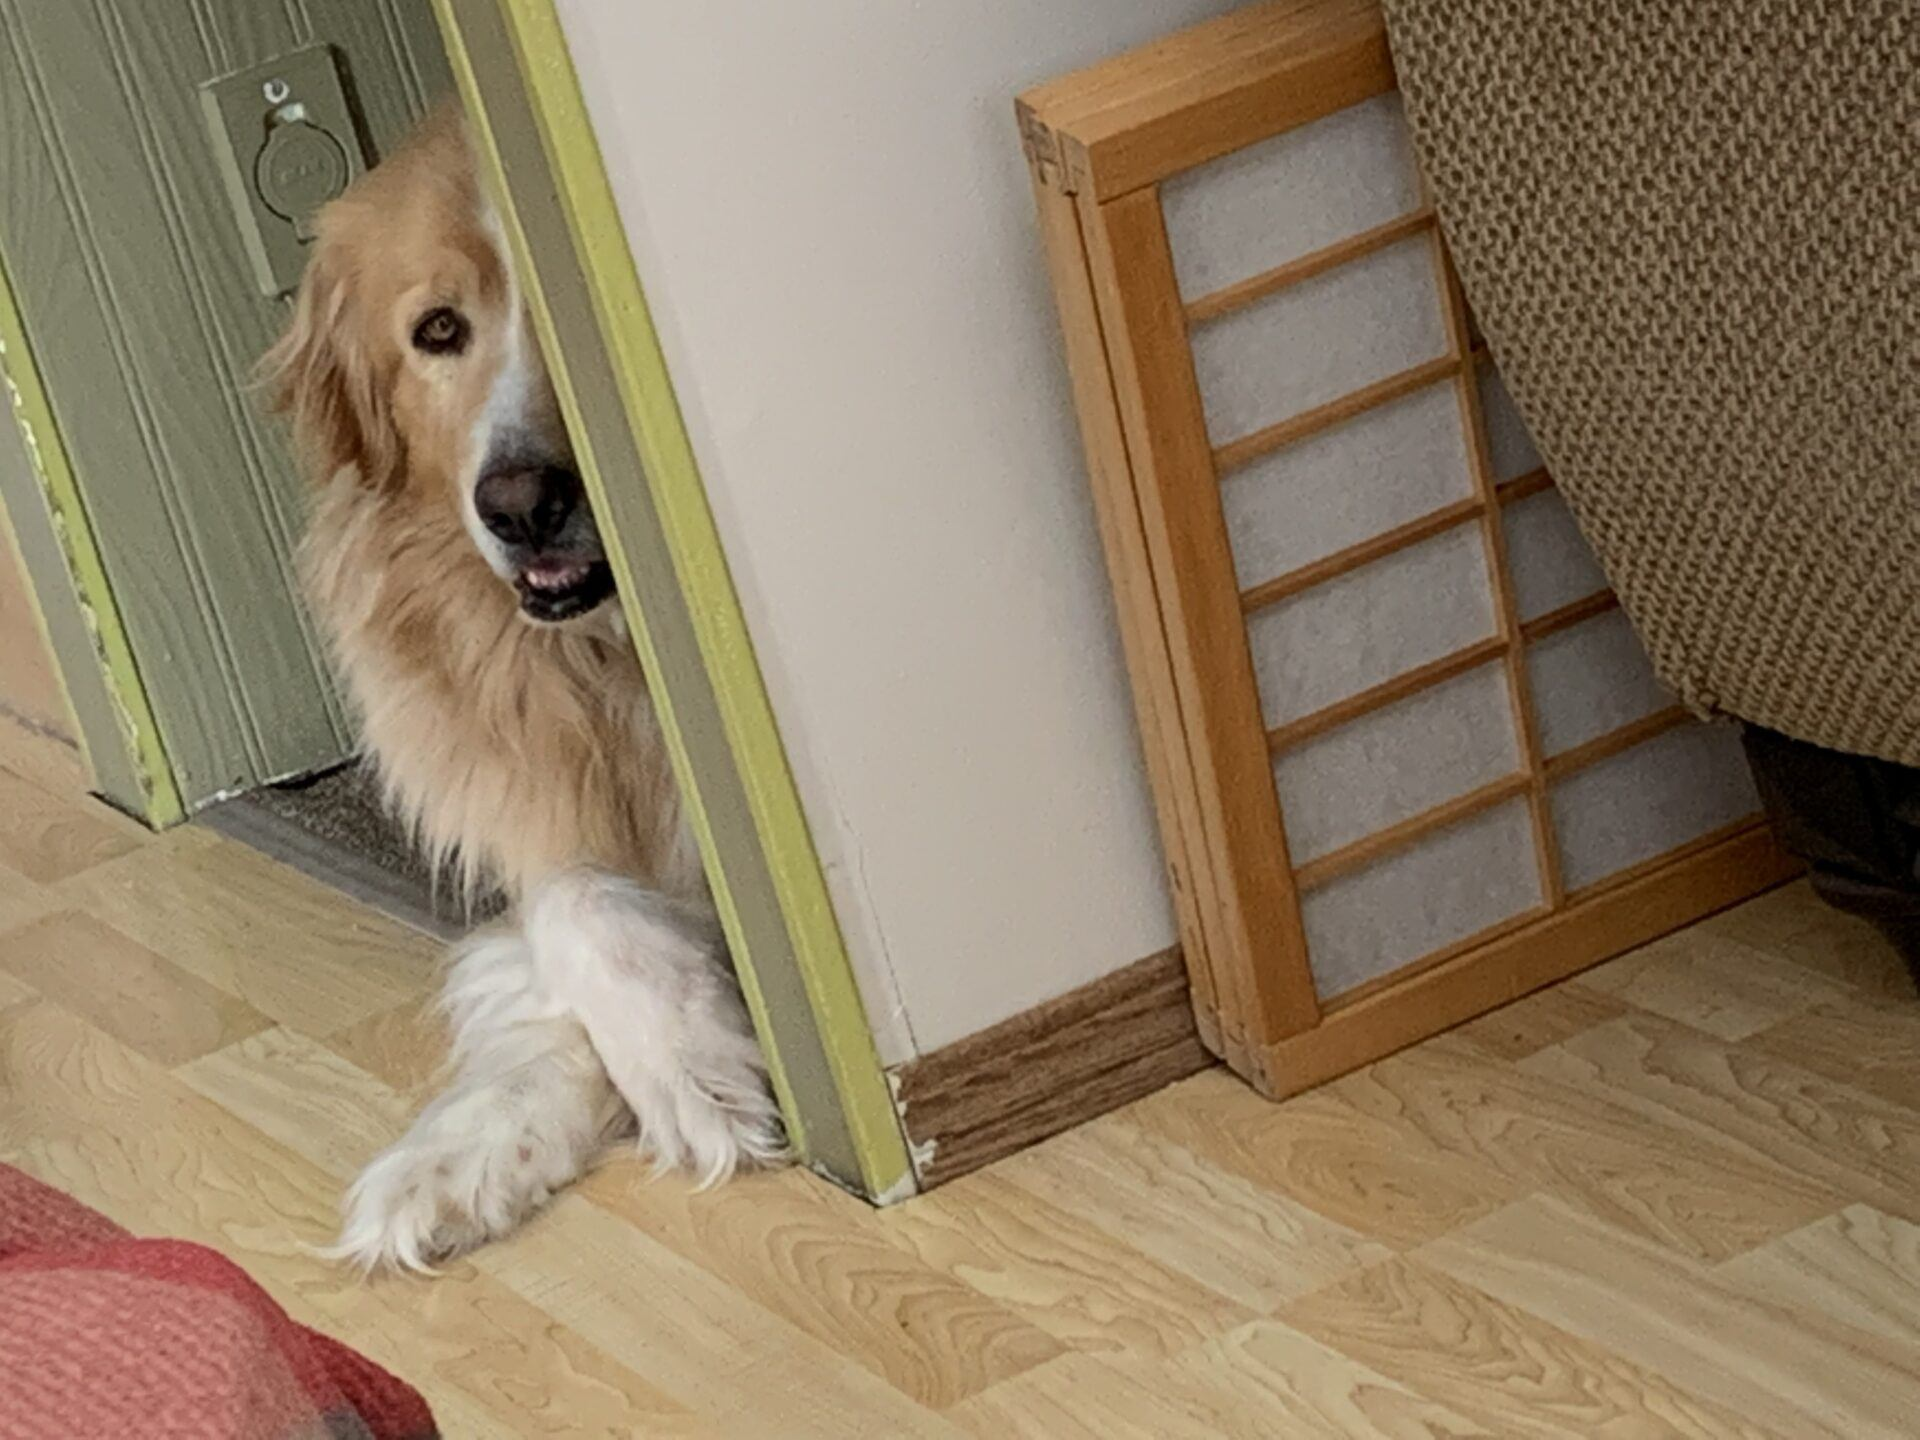 Golden/Pyrenees dog peeking around a corner